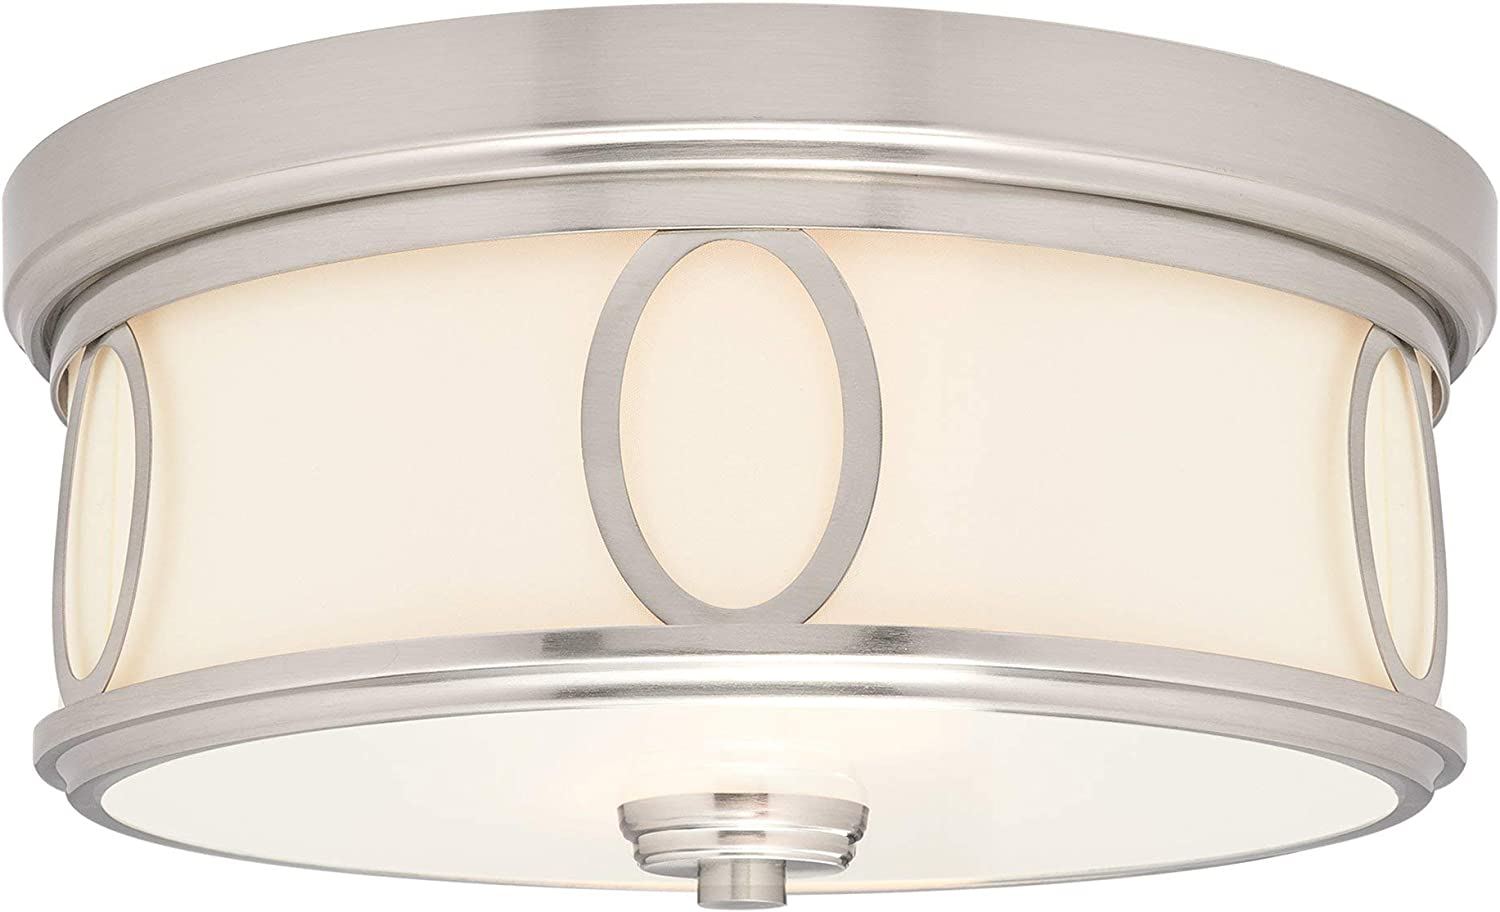 "Kira Home Simone 13.5"" Modern Round 2-Light Flush Mount Ceiling Light with Glass Diffuser, Brushed Nickel Finish"